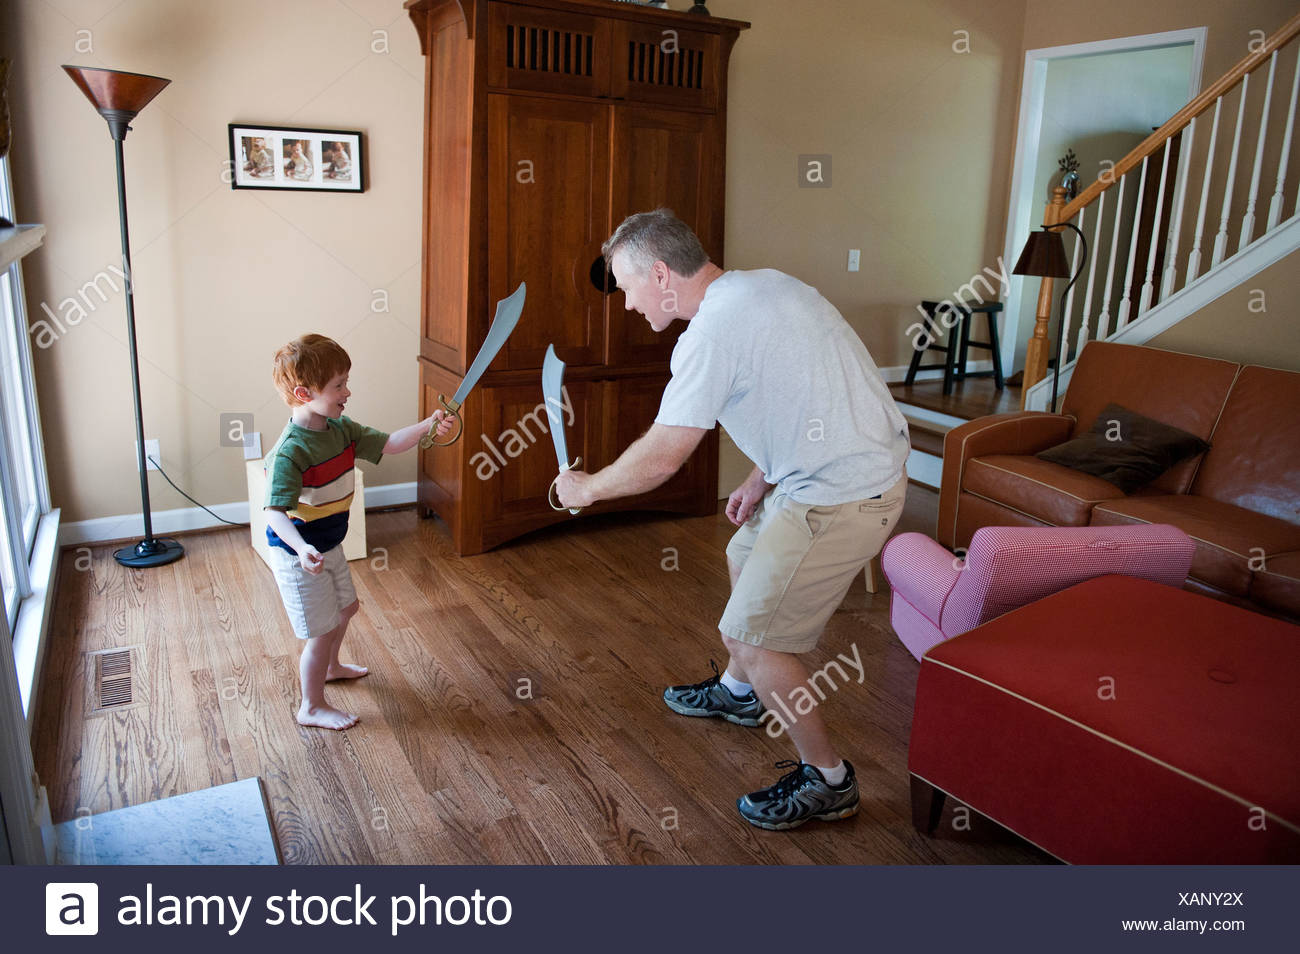 A father and son pretend to be pirates at their home in Marietta, GA. - Stock Image